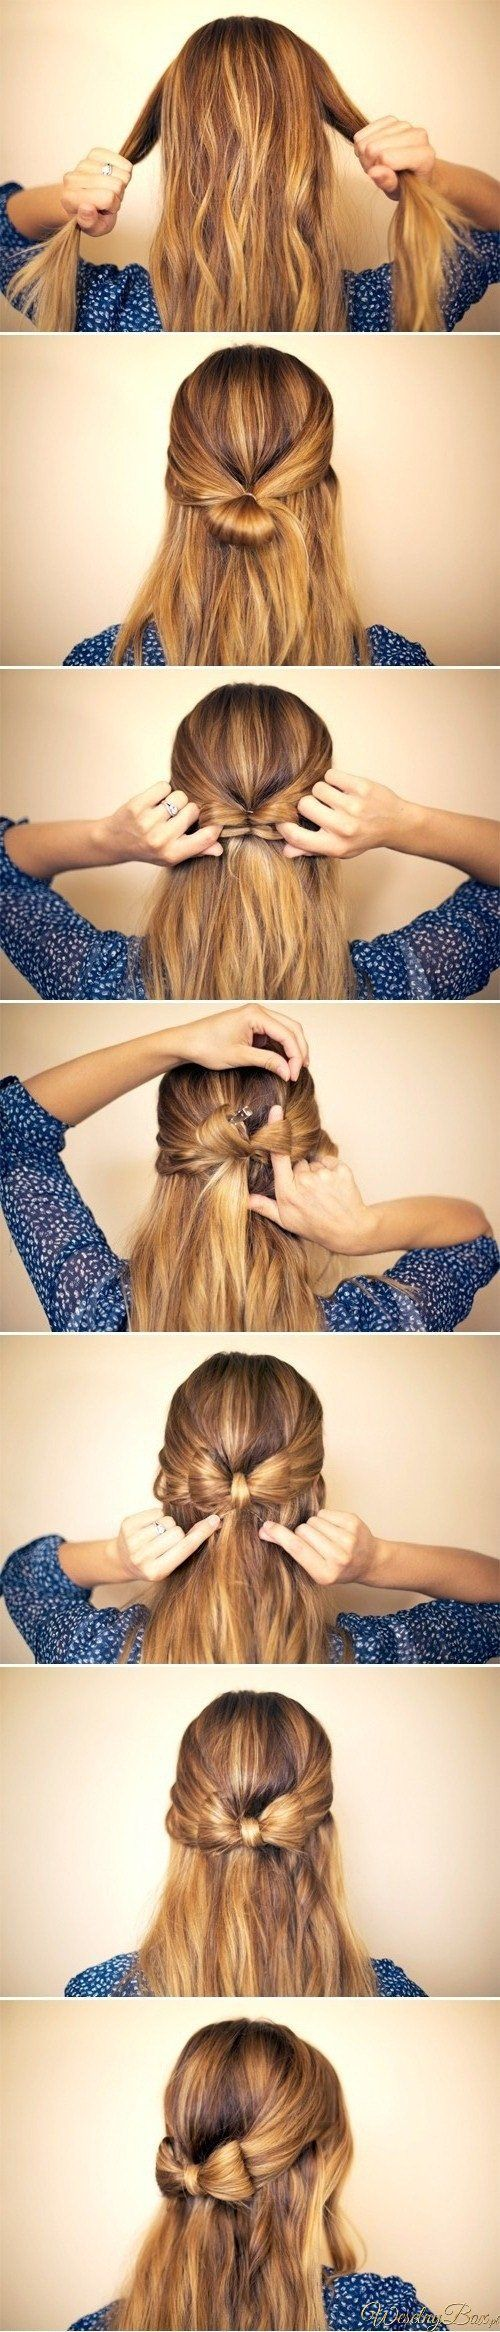 Cute bow hairdo